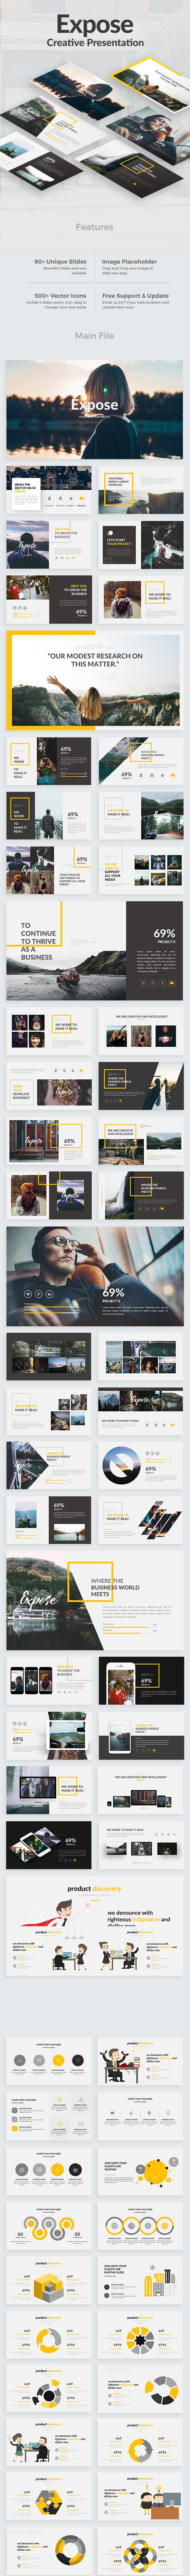 Expose Creative Powerpoint Template - Creative PowerPoint Templates